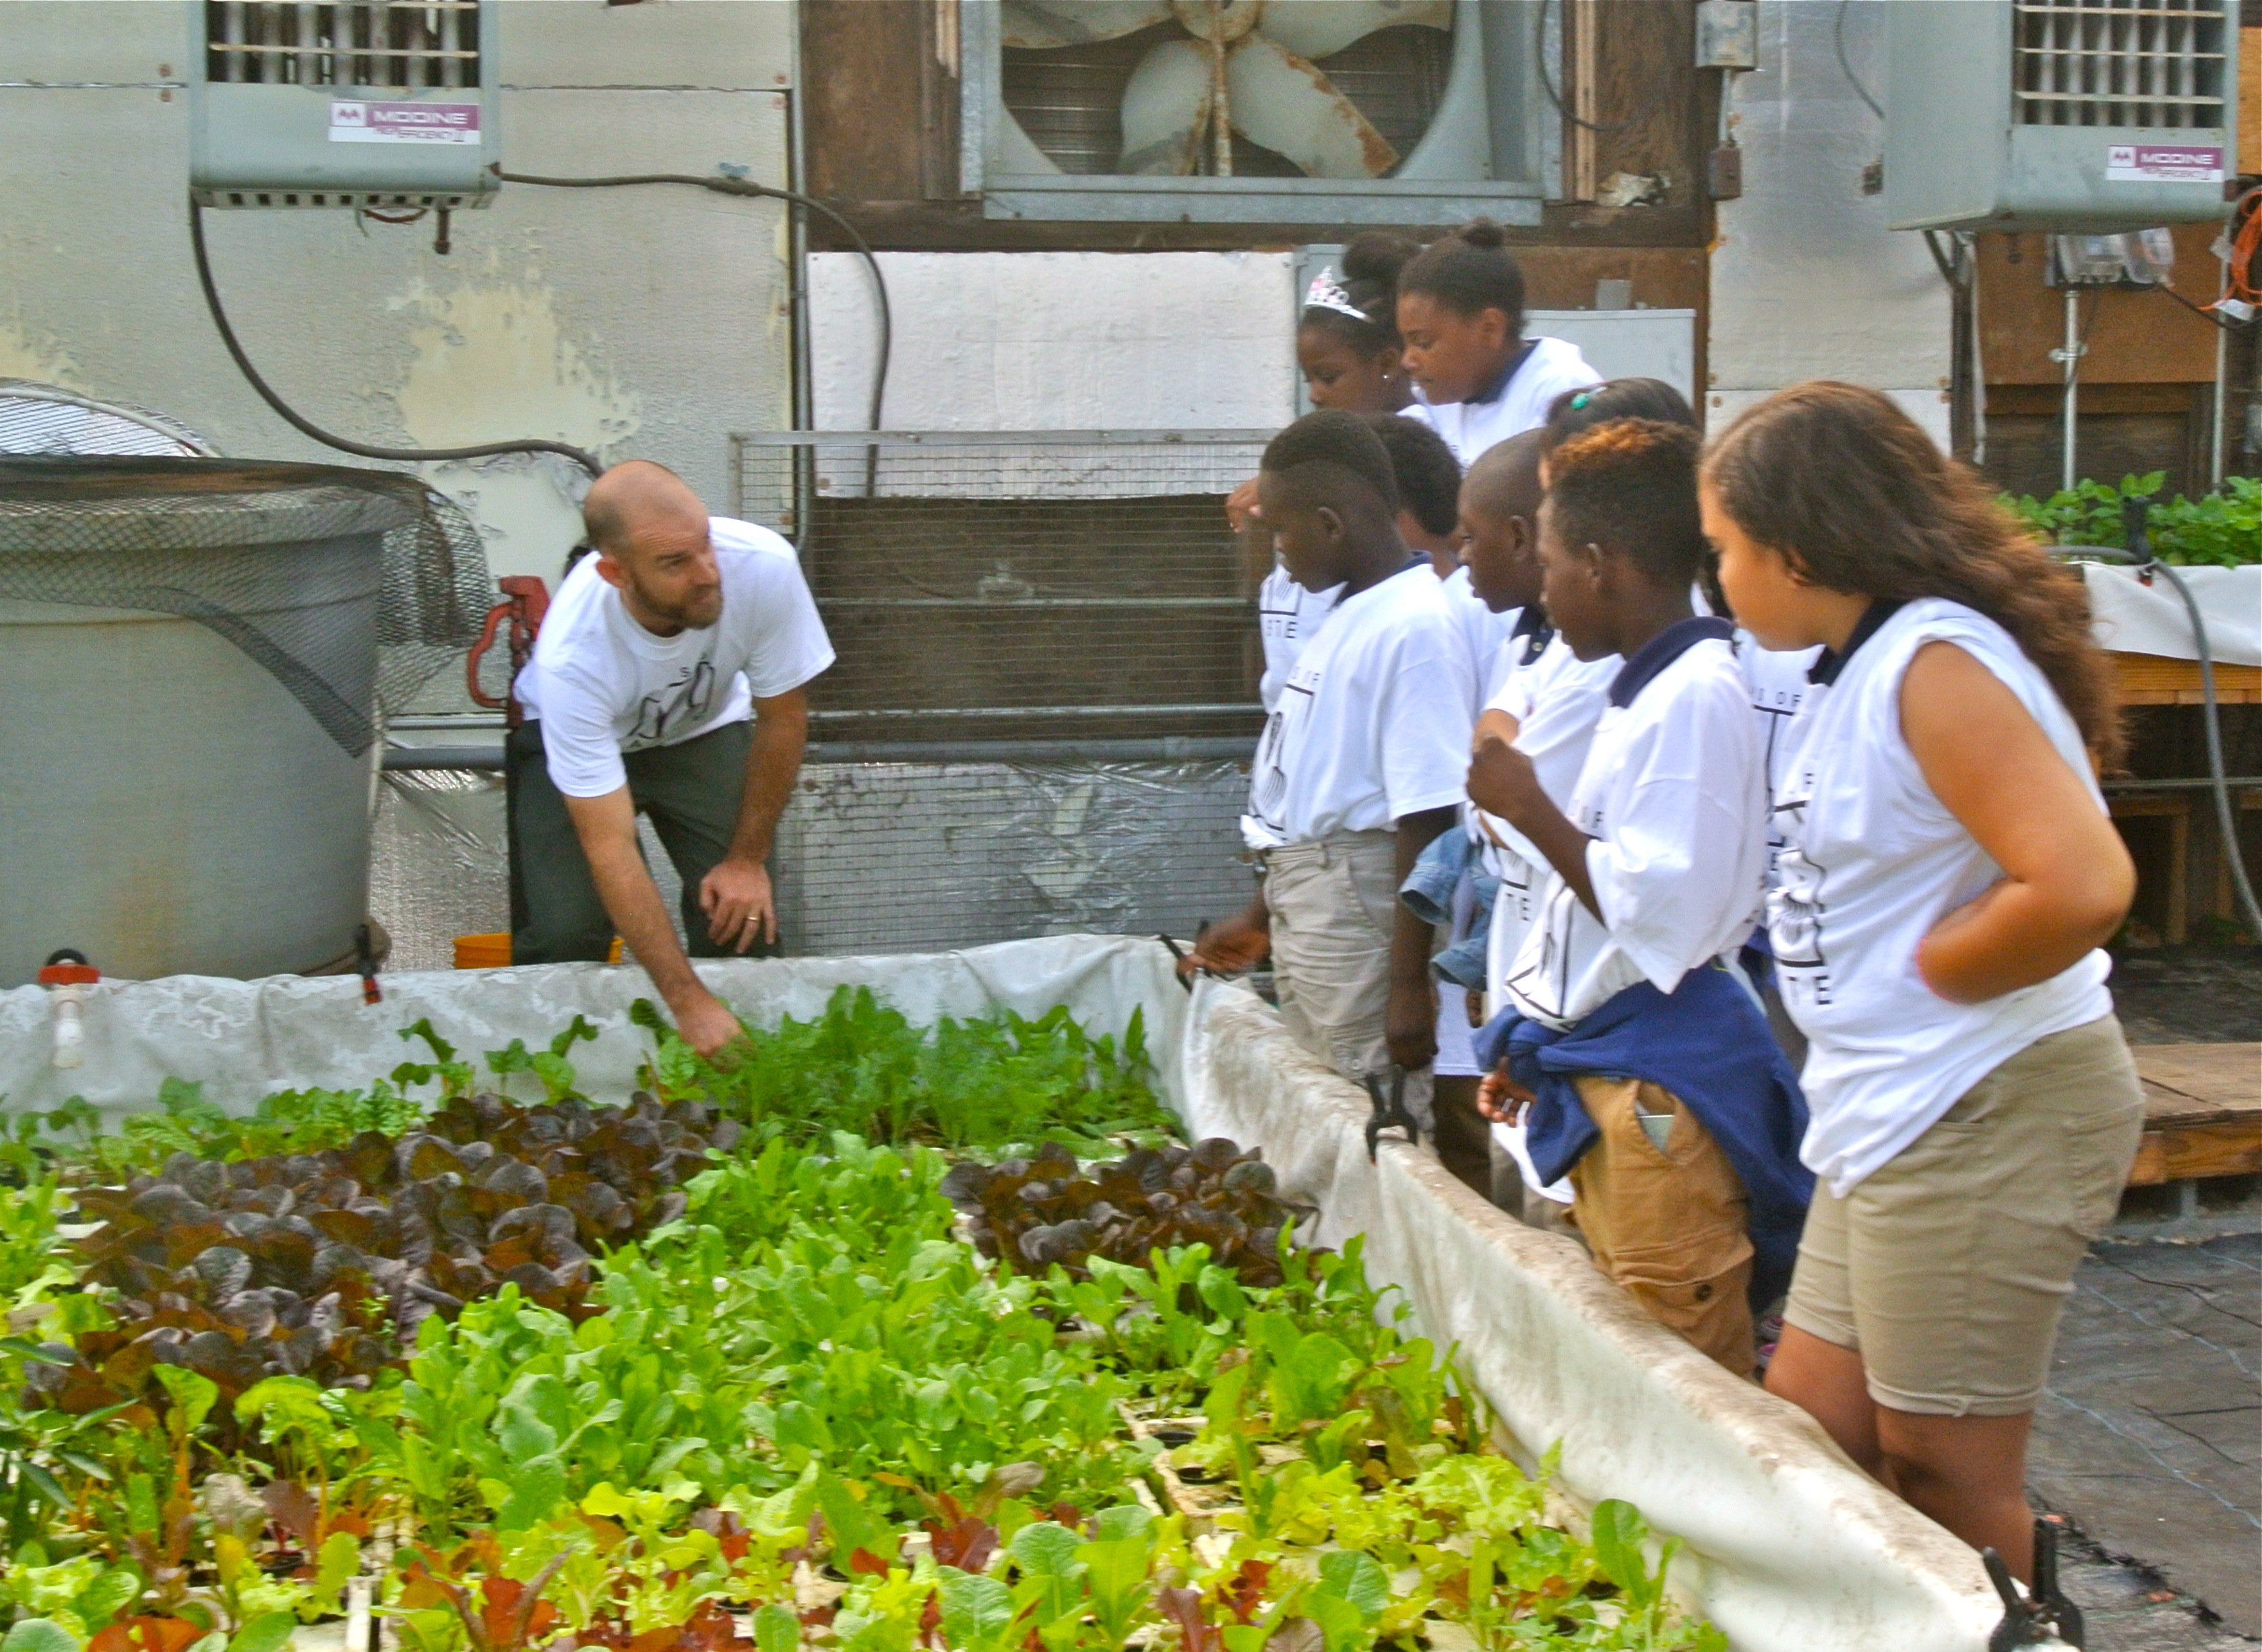 Barclay Days of Taste students visiting The Johns Hopkins Food System Lab @ Cylburn, learning about aquaponics, a system of agriculture that combines fish farming with hydroponic plant farming, from Farm Manager Jesse Blom.